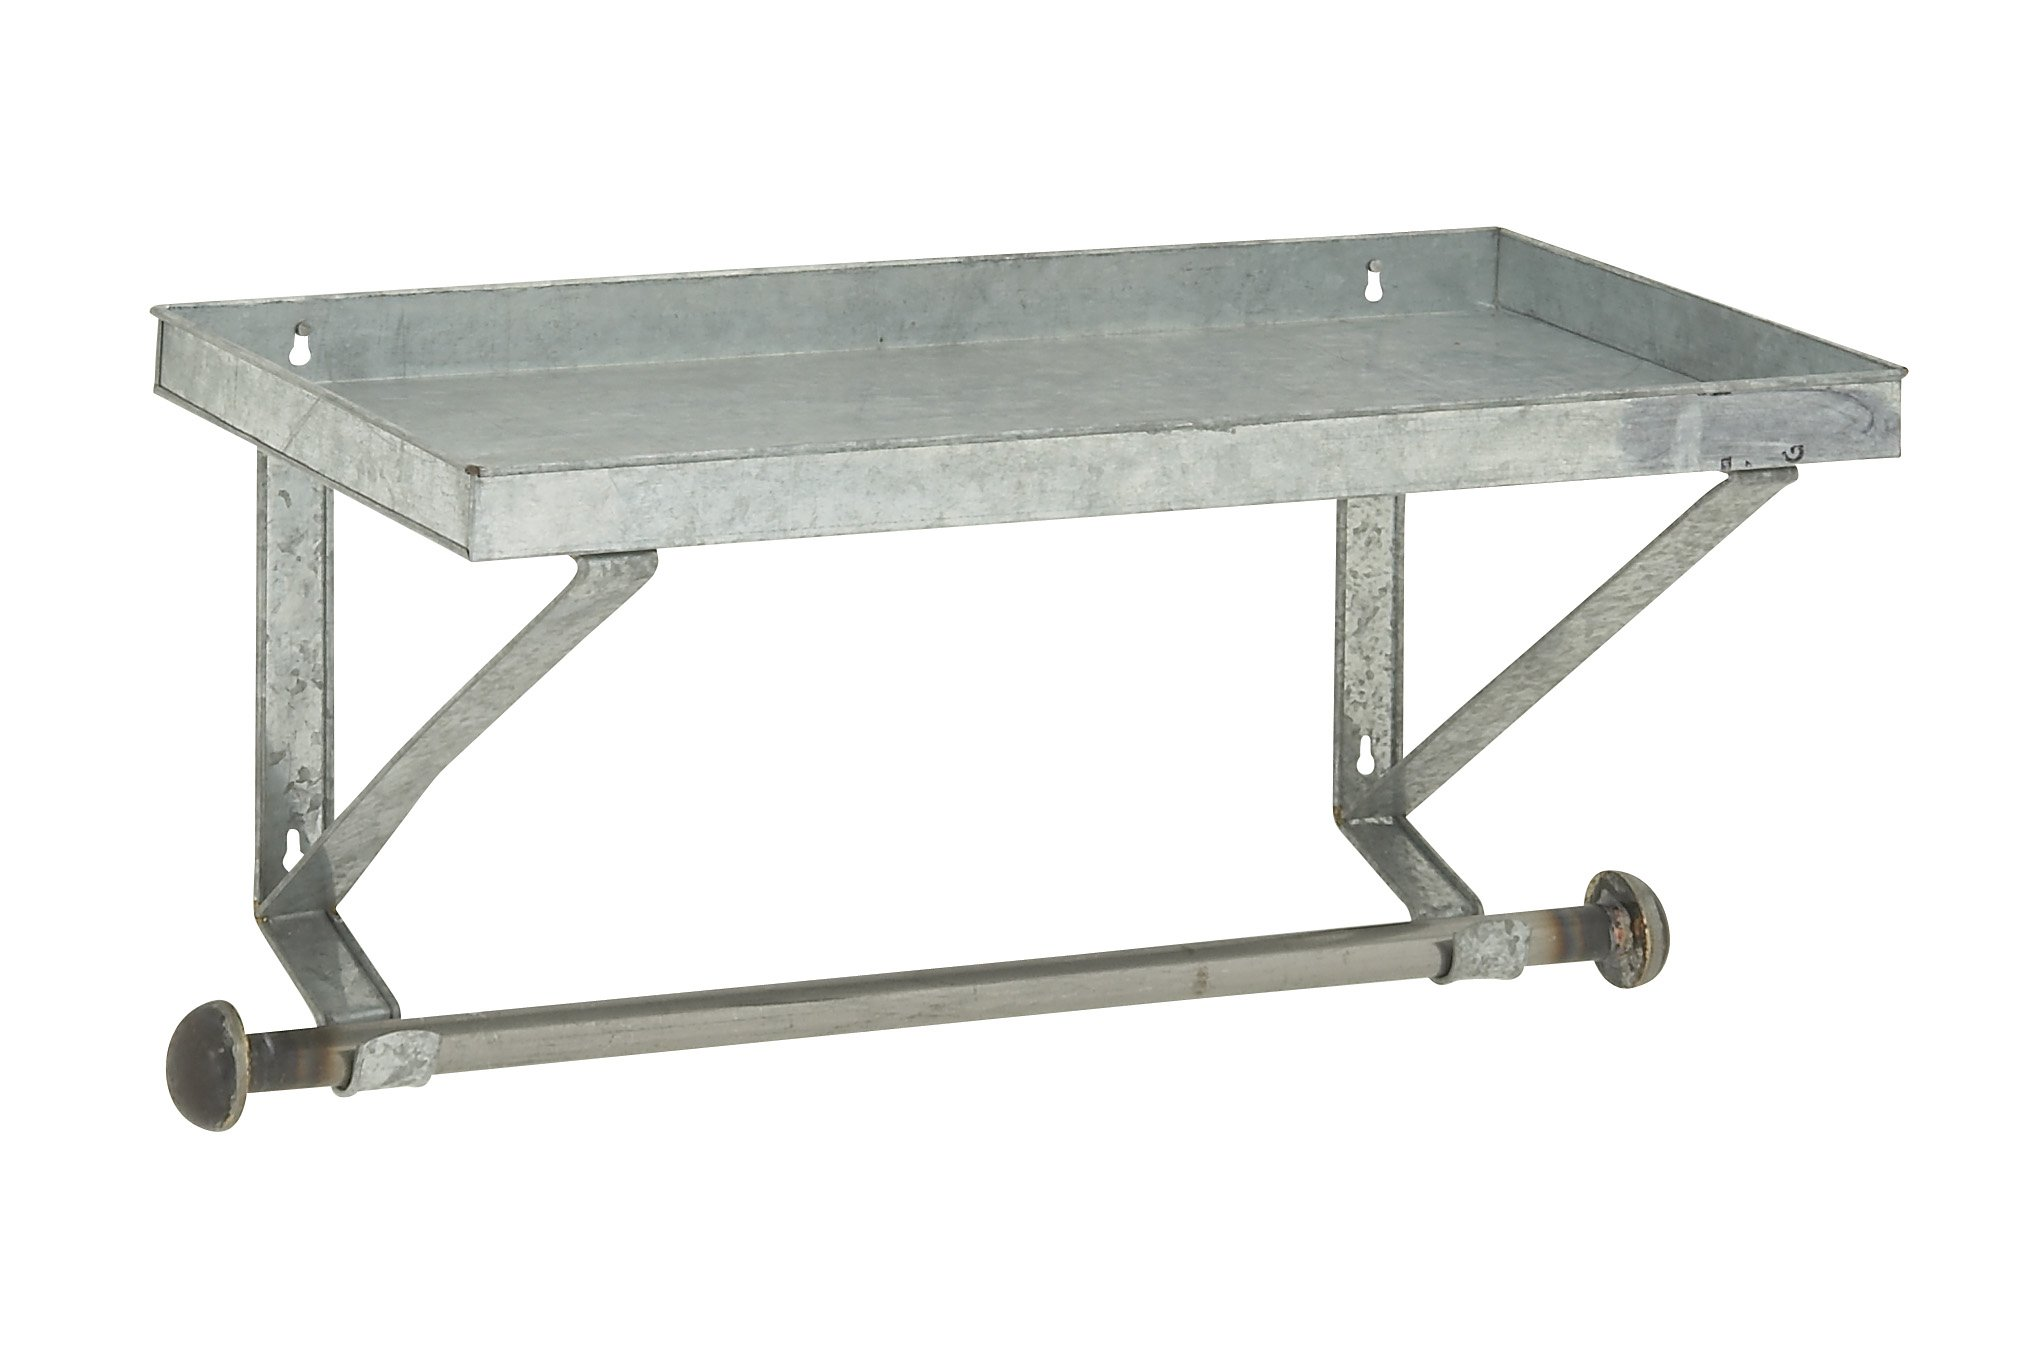 Deco 79 Well-Built Metal Wall Shelf With Rod by Deco 79 (Image #1)